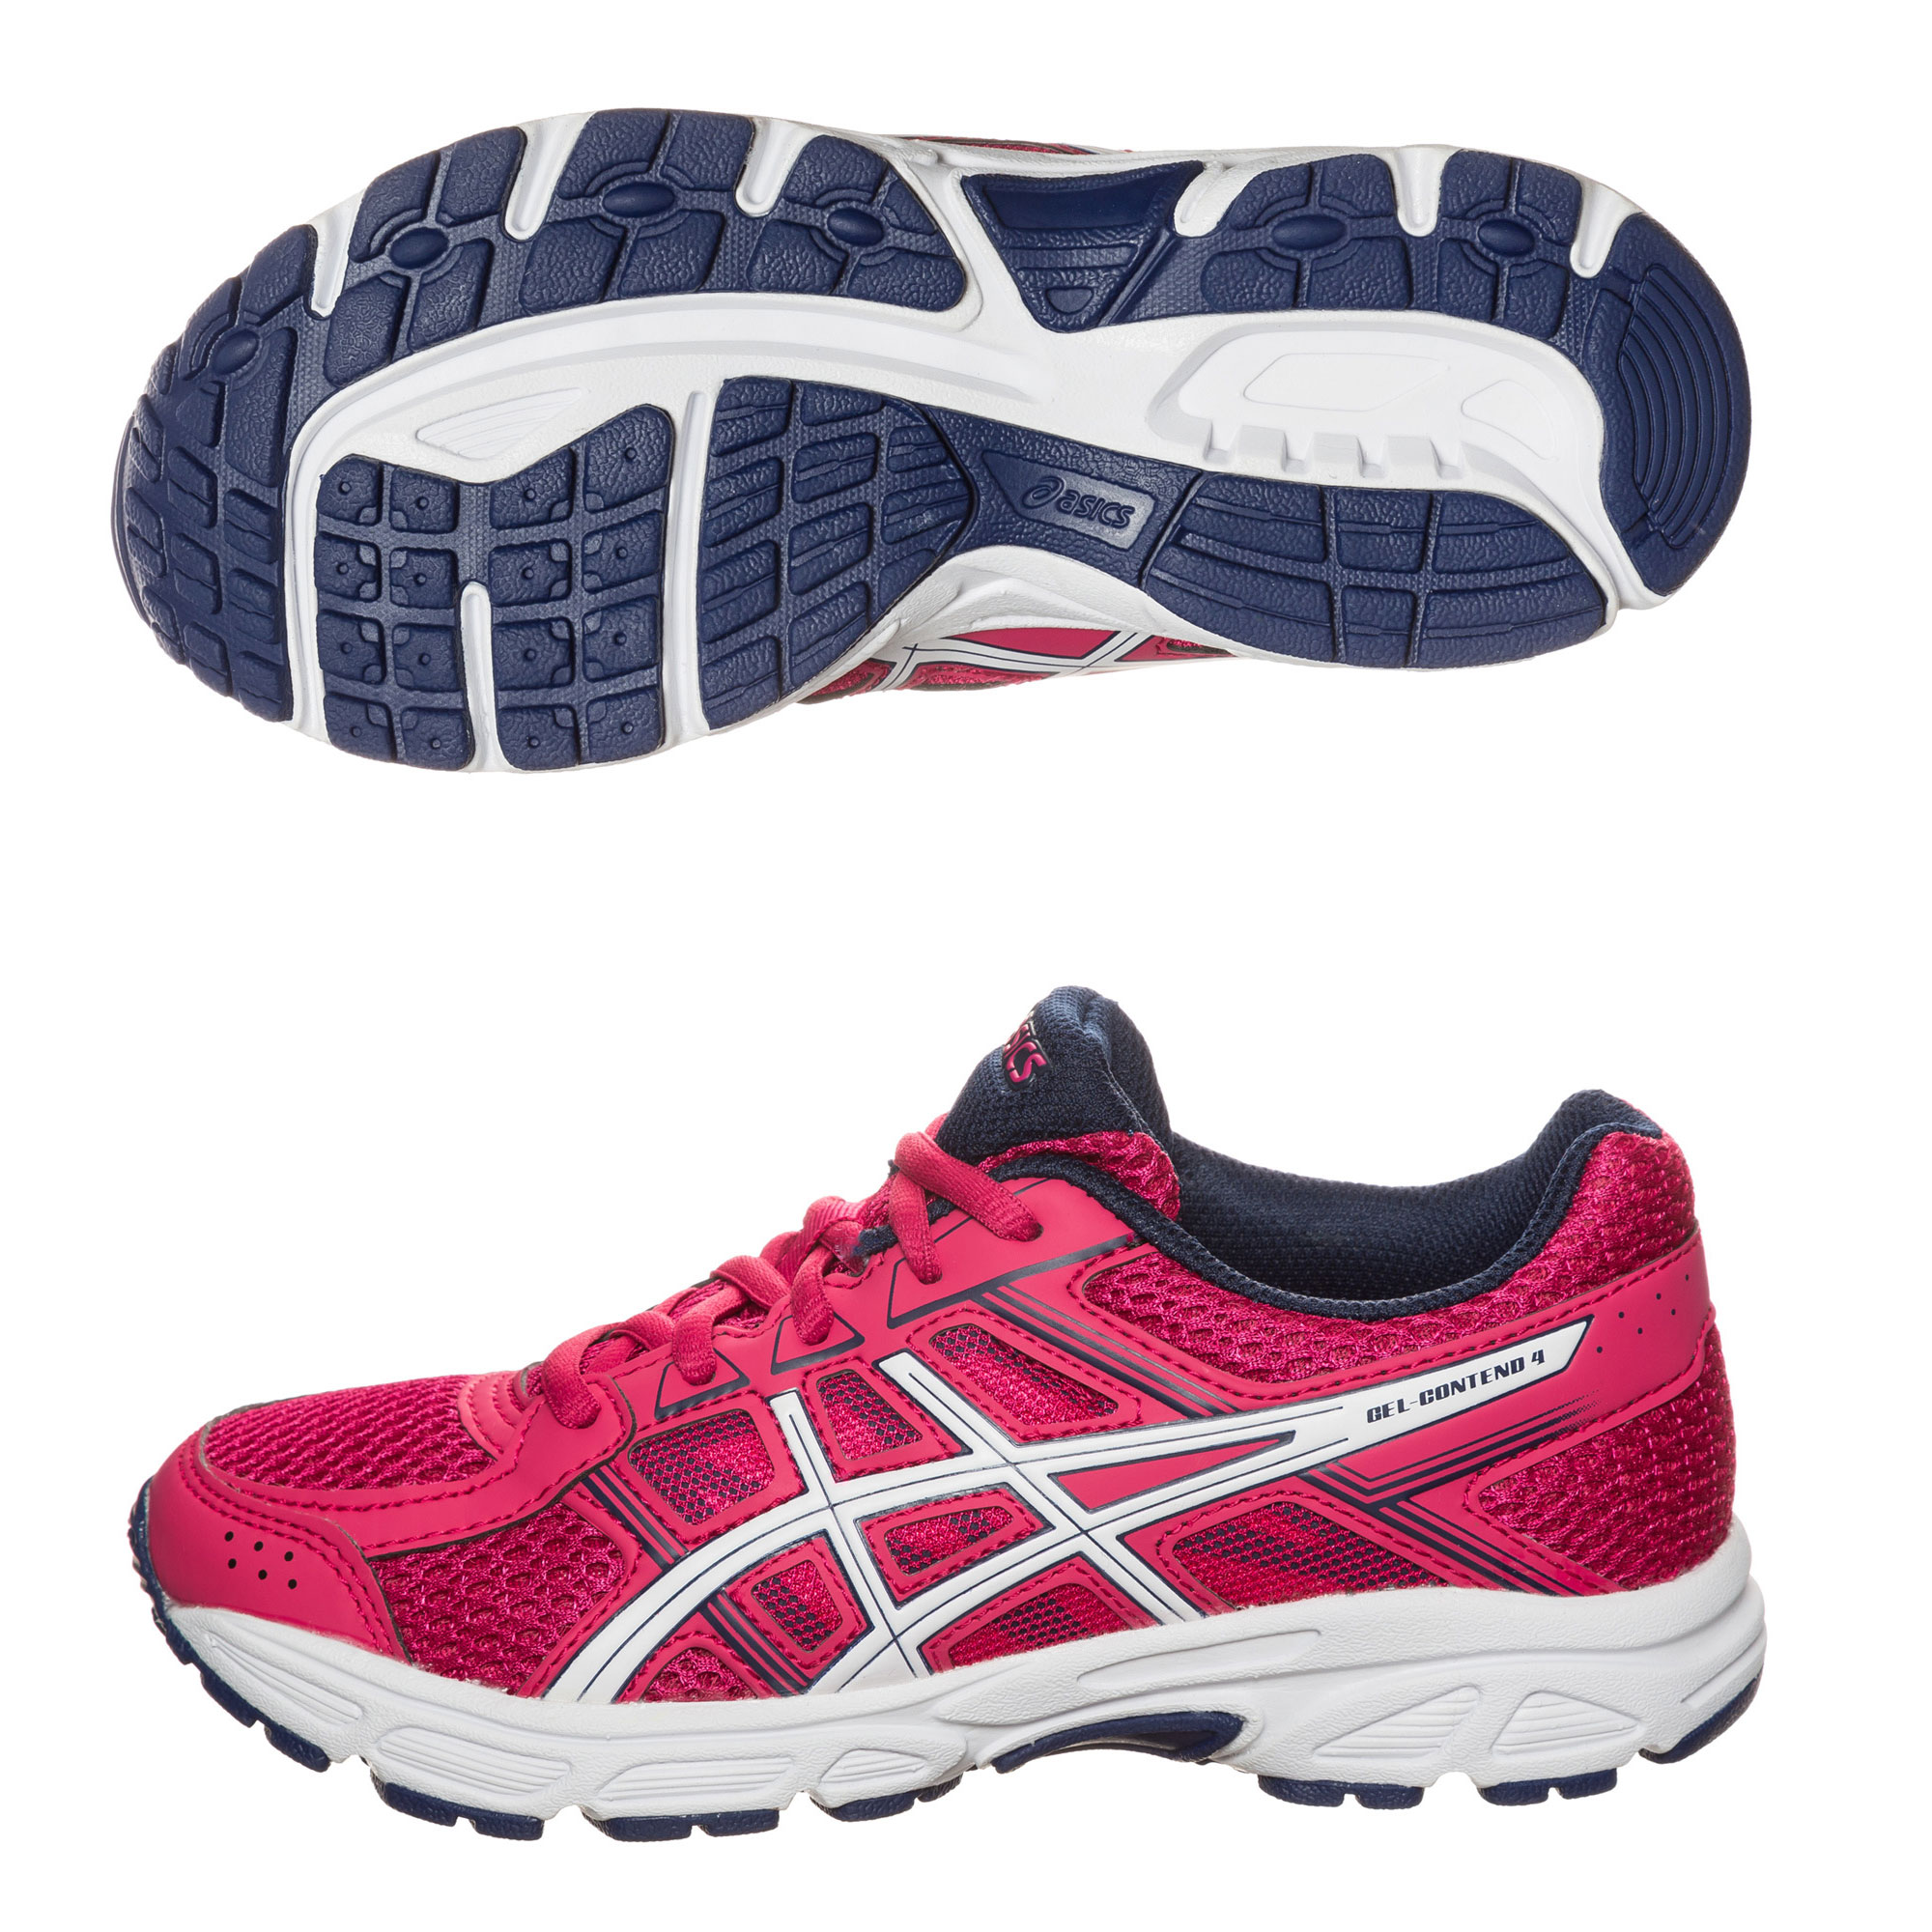 КРОССОВКИ ASICS GEL-CONTEND 4 GS C707N-2001 JR от магазина SPHF.ru